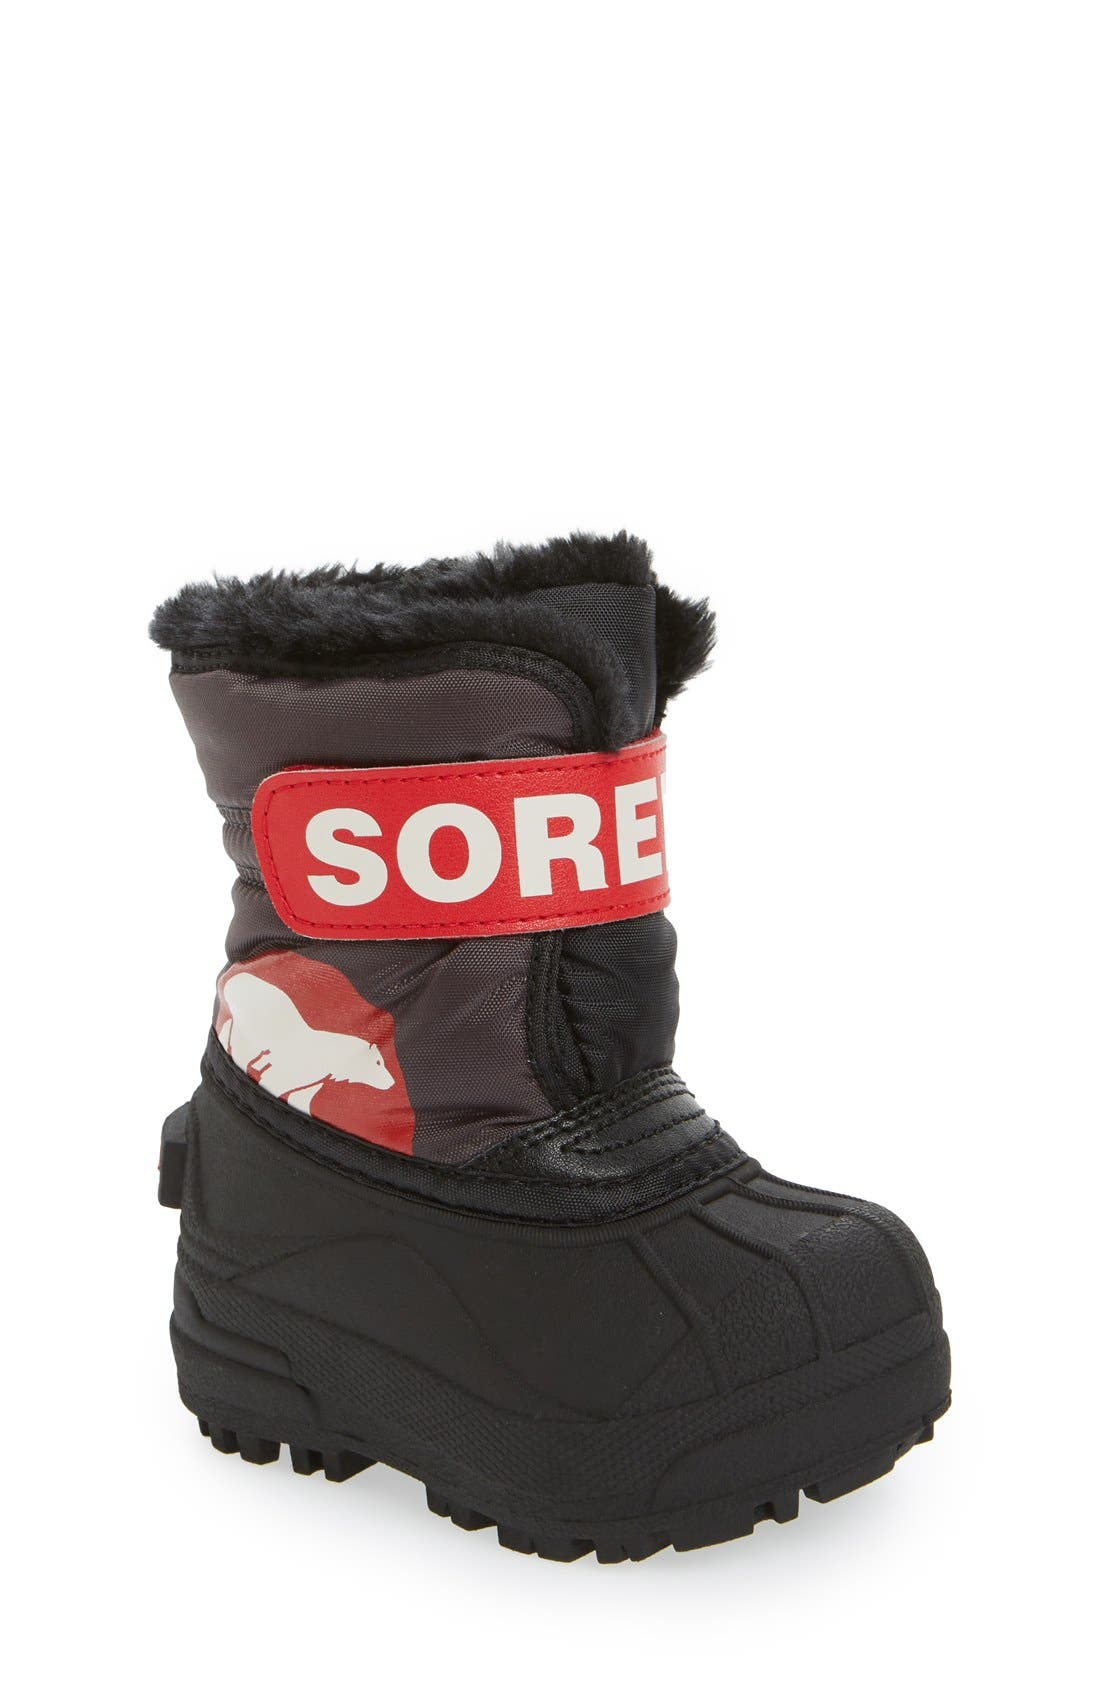 'Snow Commander' Boot,                             Main thumbnail 1, color,                             DARK GREY/ BRIGHT RED